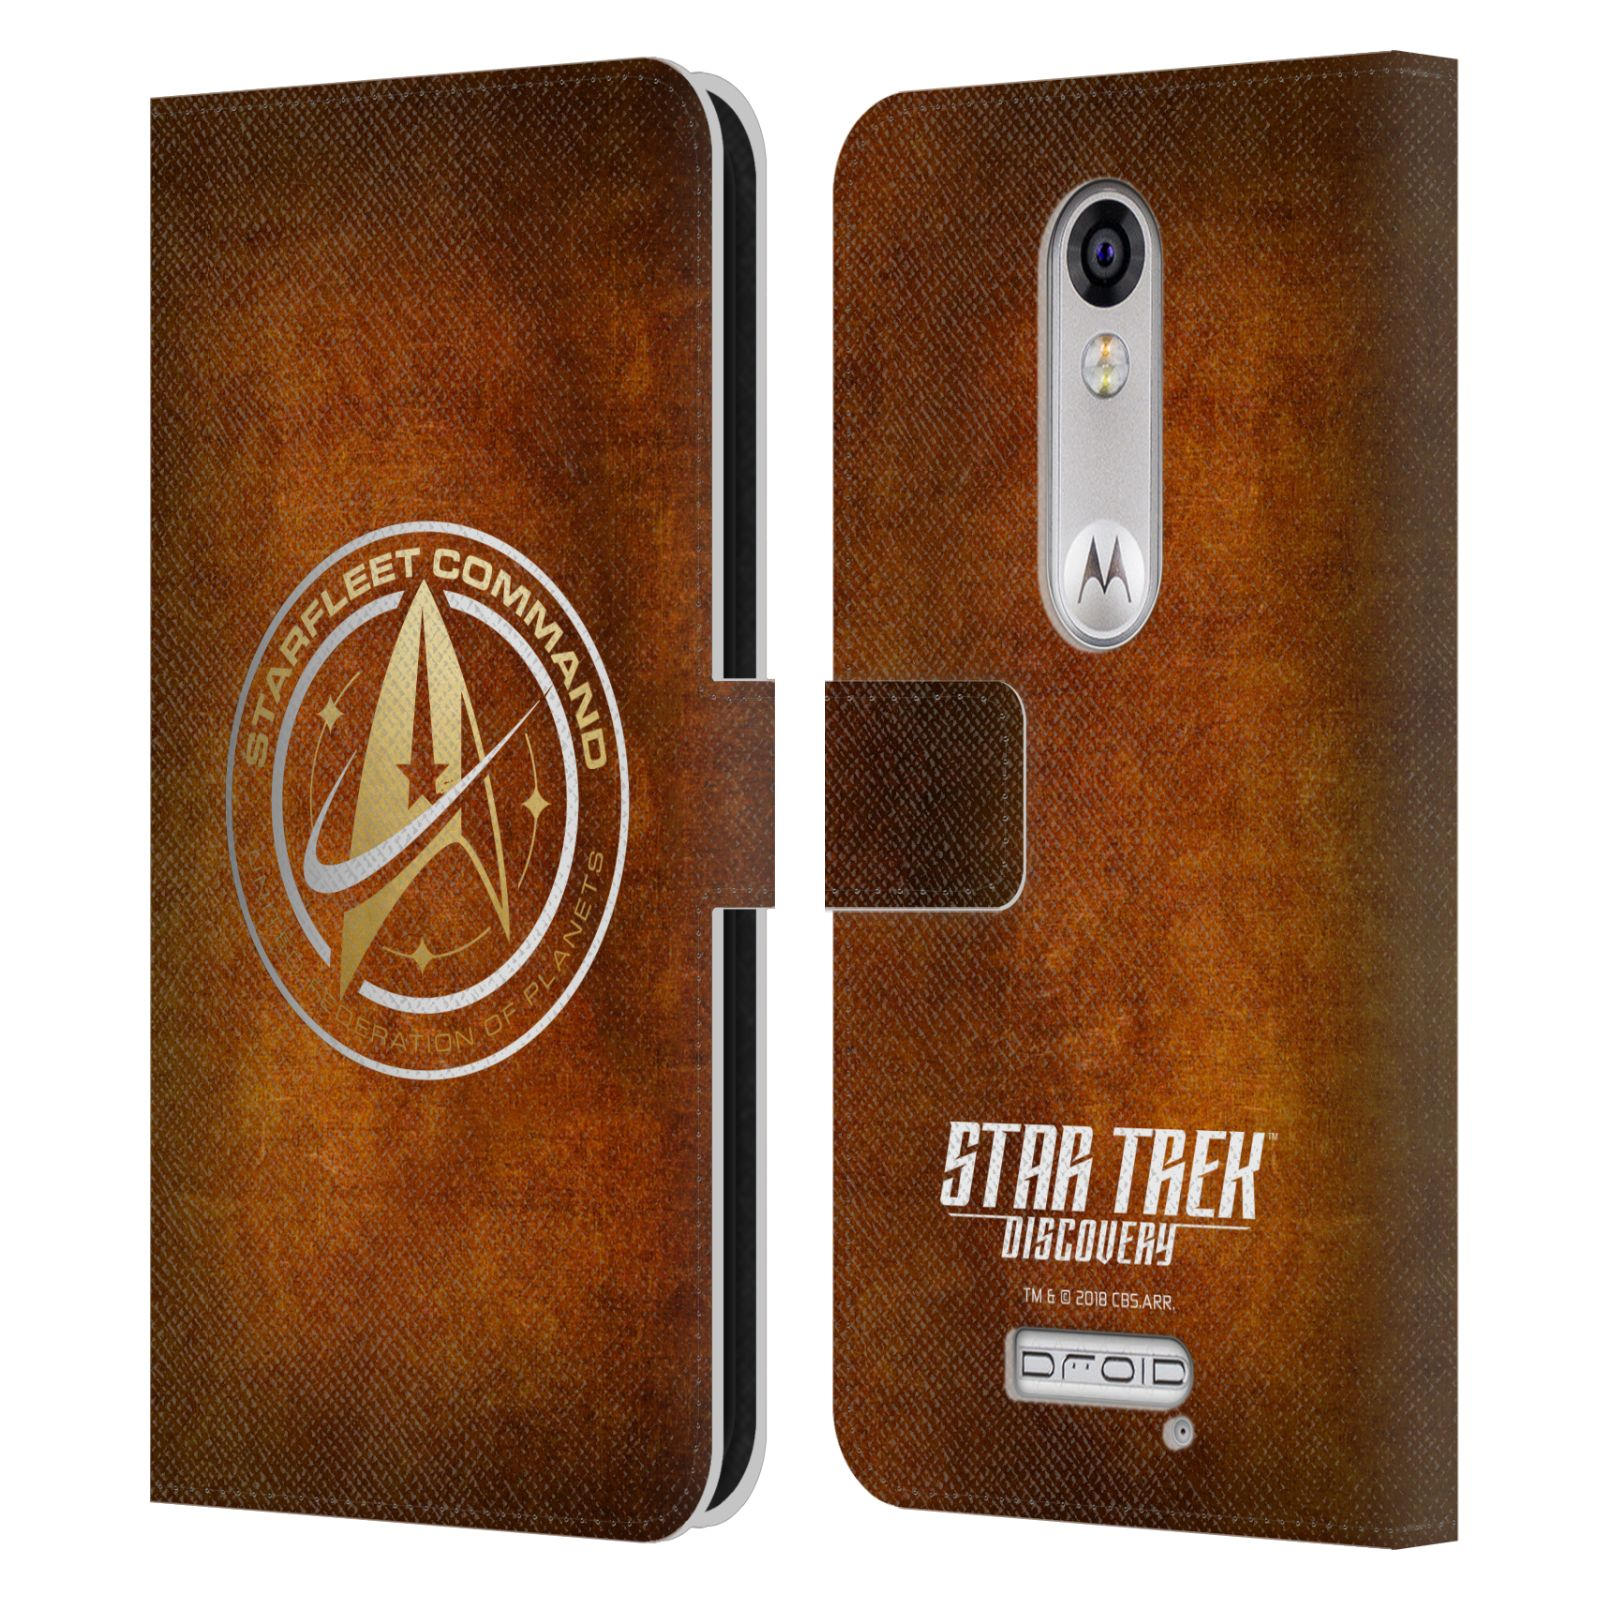 OFFICIAL-STAR-TREK-DISCOVERY-BADGES-LEATHER-BOOK-CASE-FOR-MOTOROLA-PHONES-2